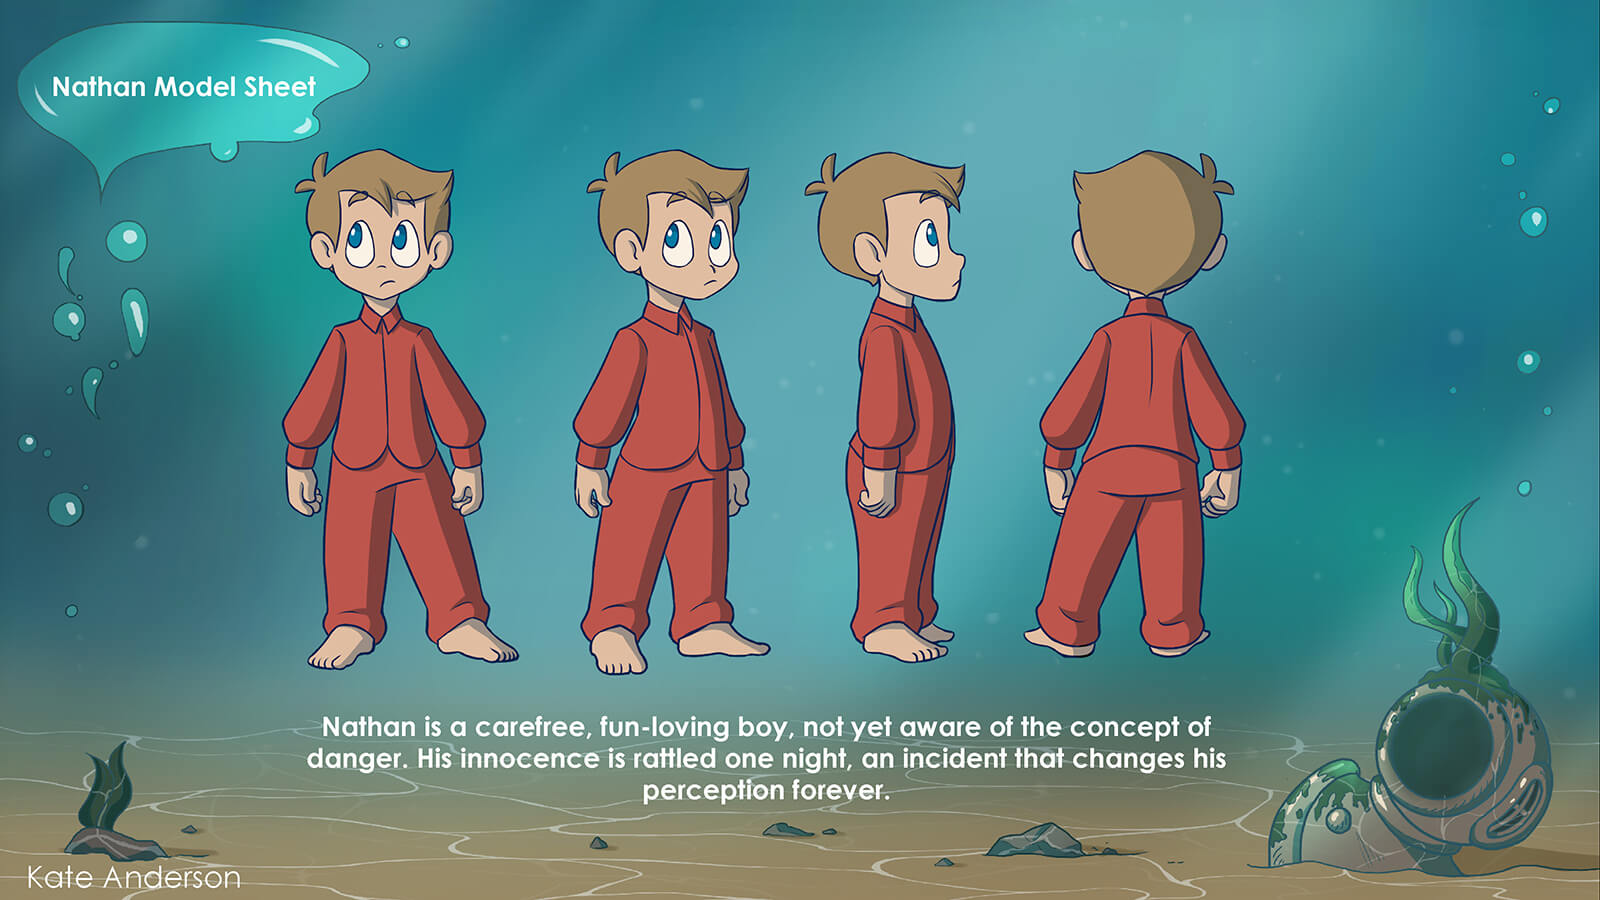 Turnaround and character description for Nathan